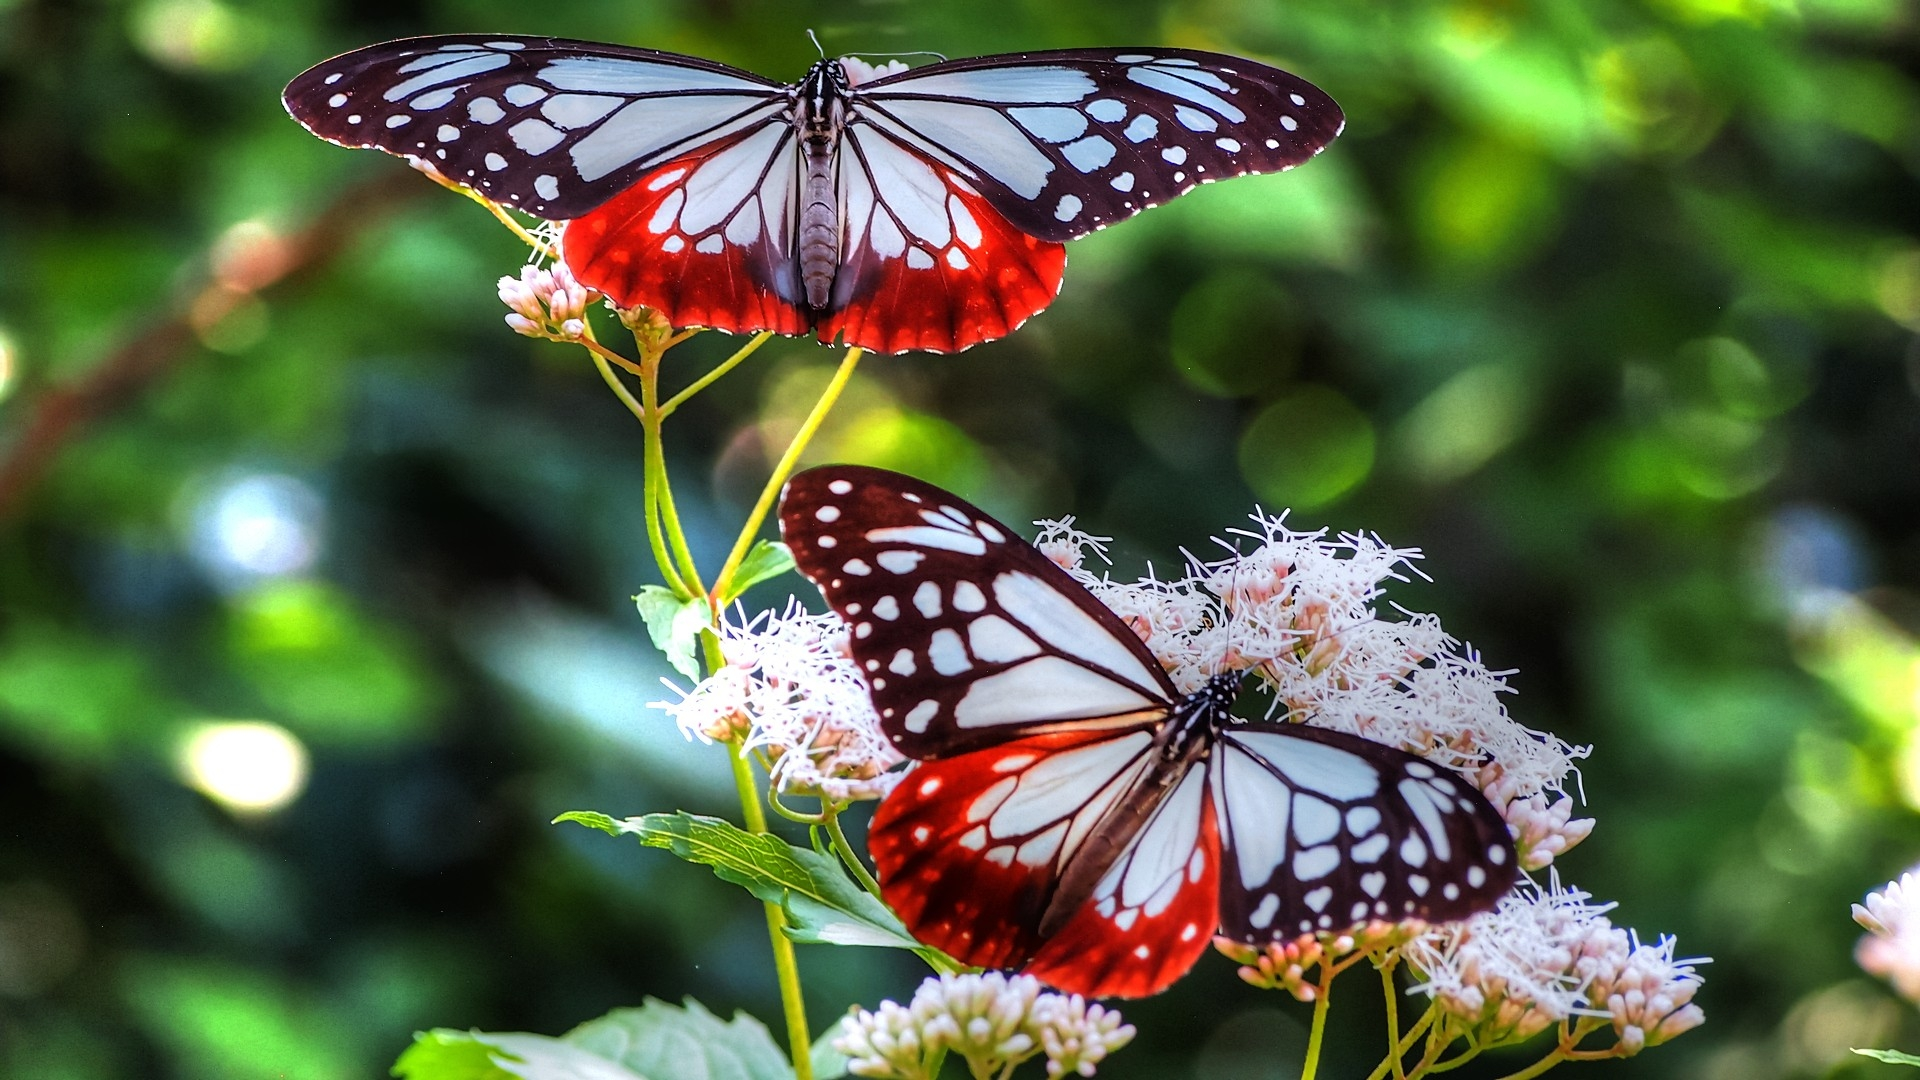 Butterflies Wallpapers Hd Download: Butterfly Wallpapers, Pictures, Images